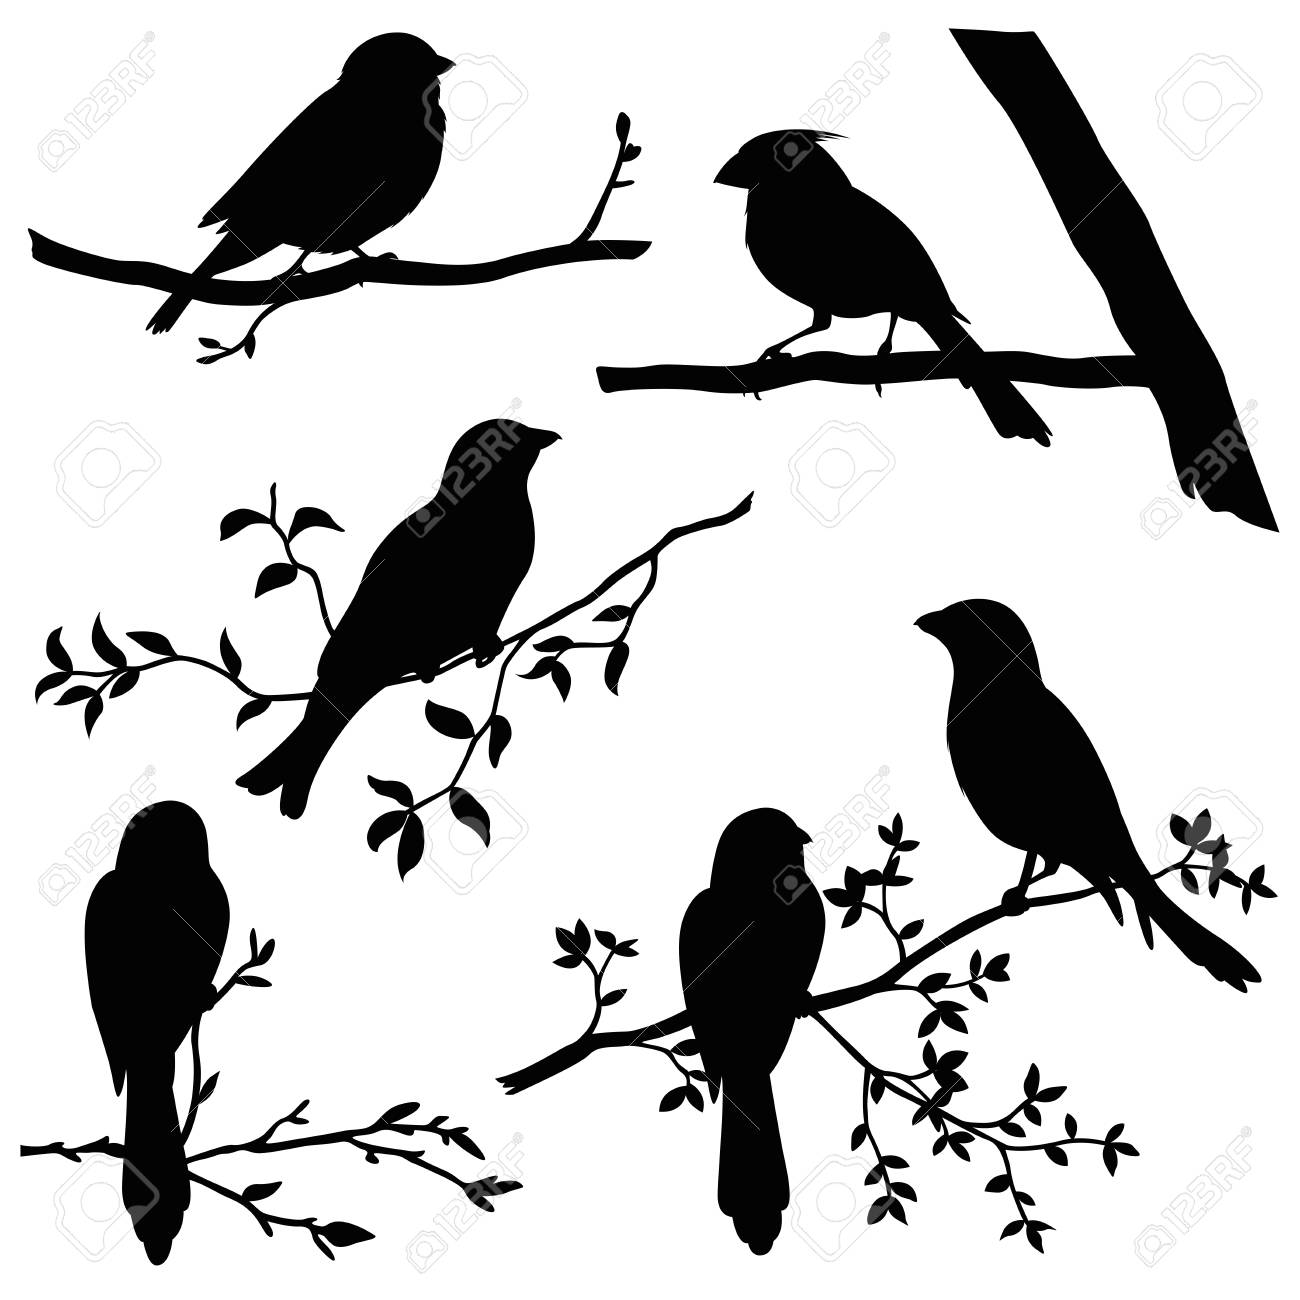 birds on branches silhouette set.